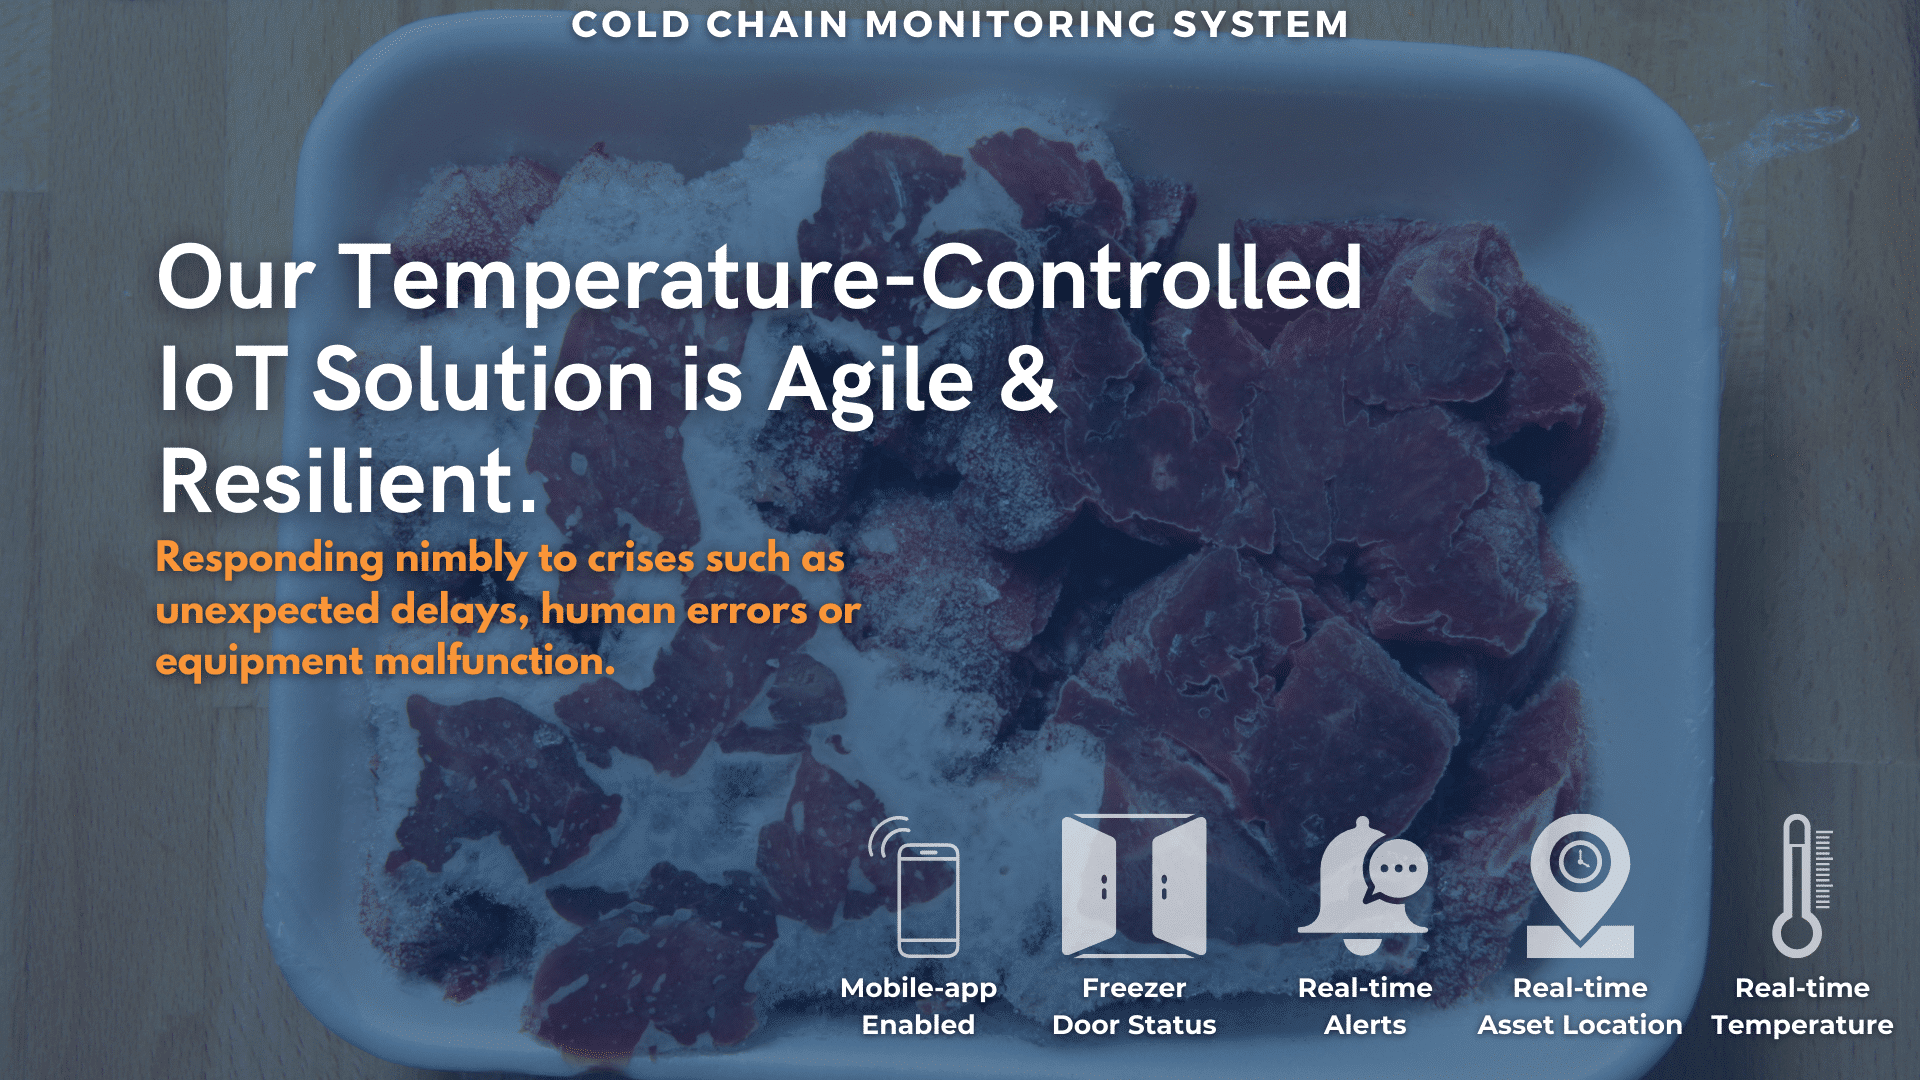 Cold Chain Monitoring System 1-min